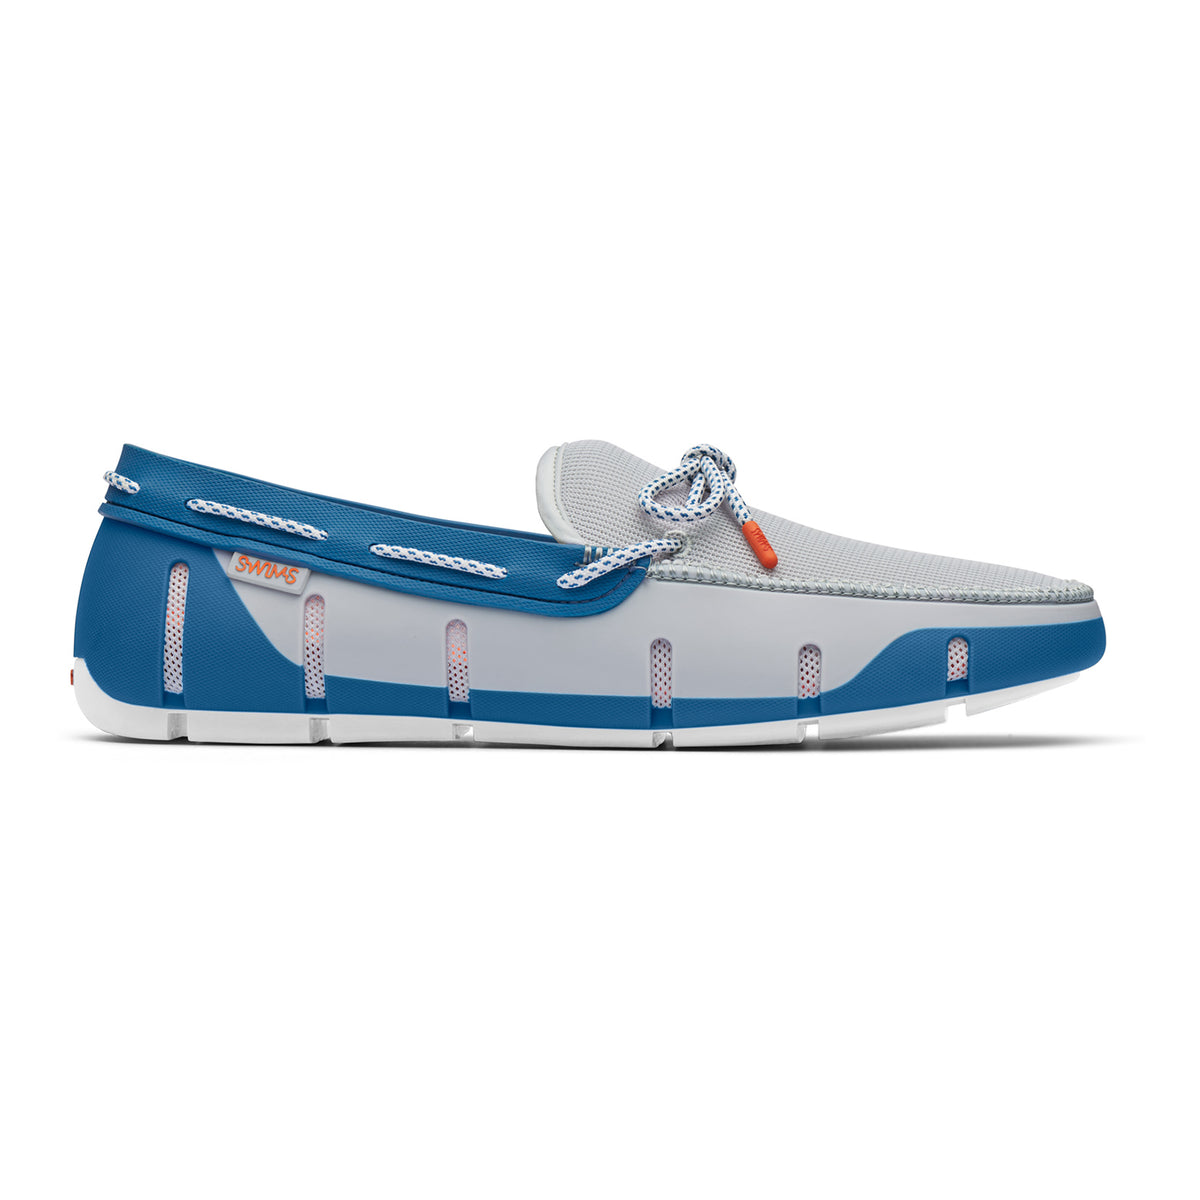 Stride Lace Loafer - background::white,variant::Alloy/Seaport Blue